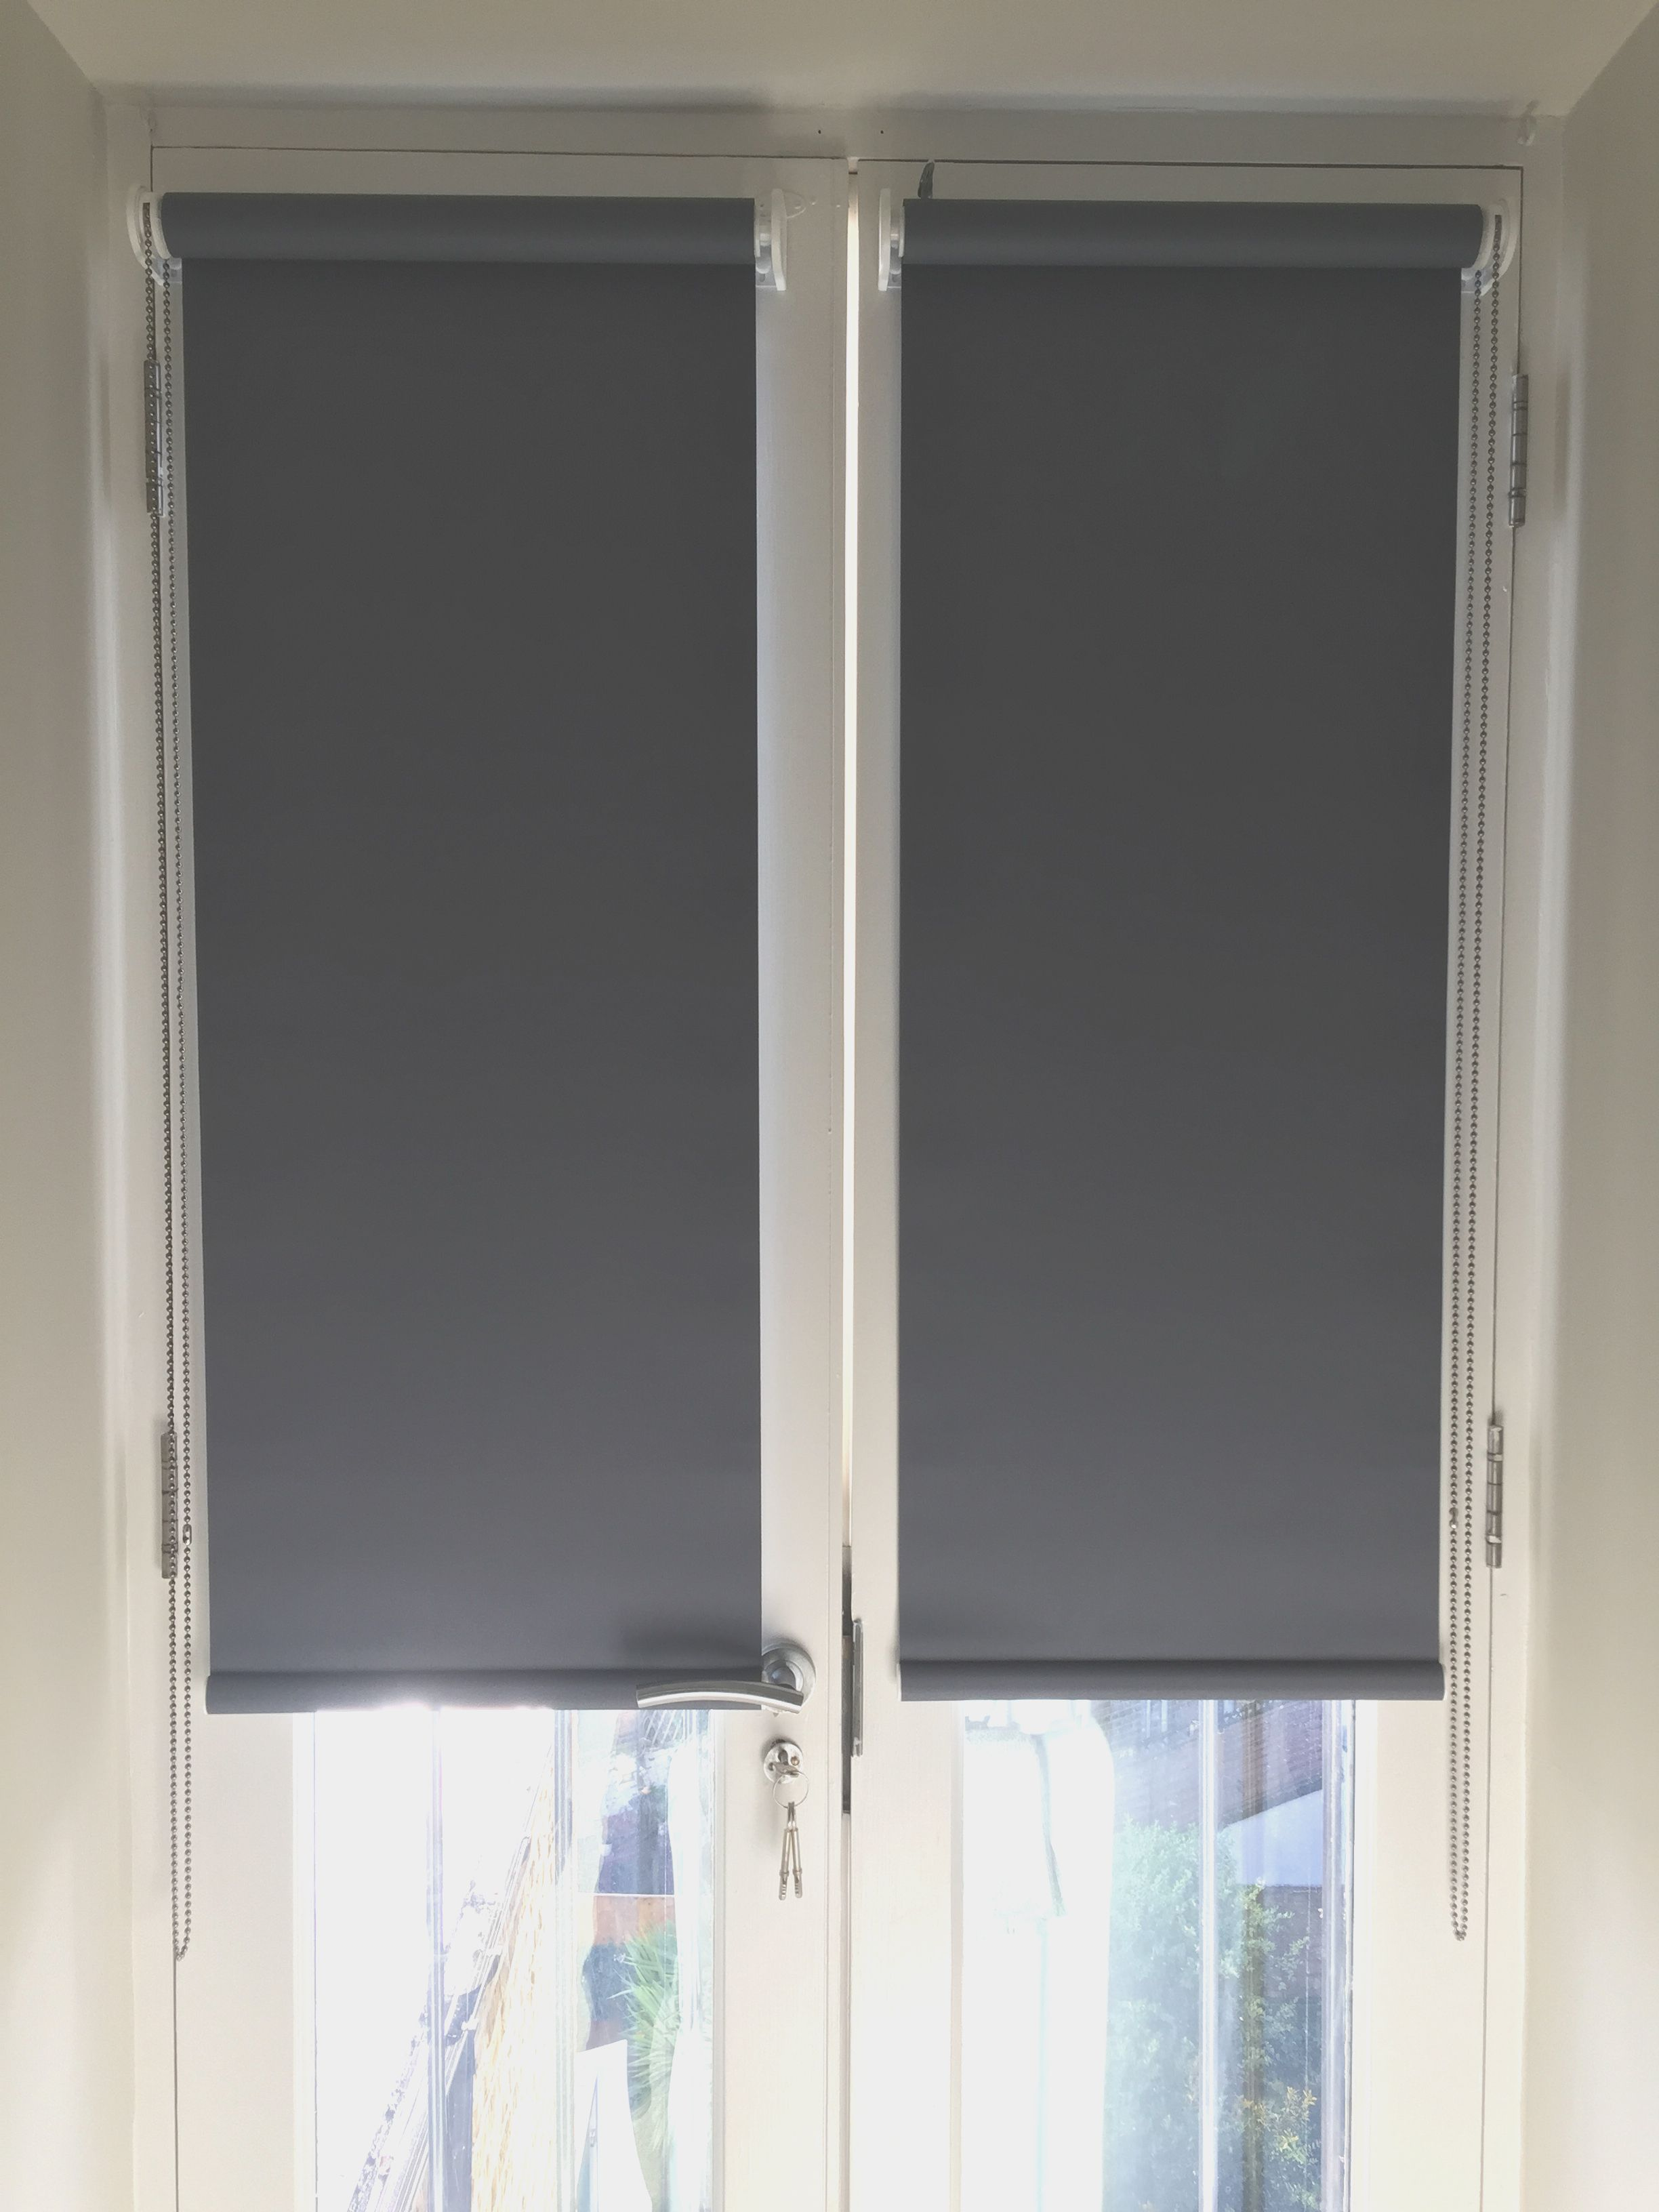 Blackout Roller Blinds For French Doors Installed To Home In Wandsworth London Made In The Uk Made To M Blinds For French Doors Door Blinds Door Coverings